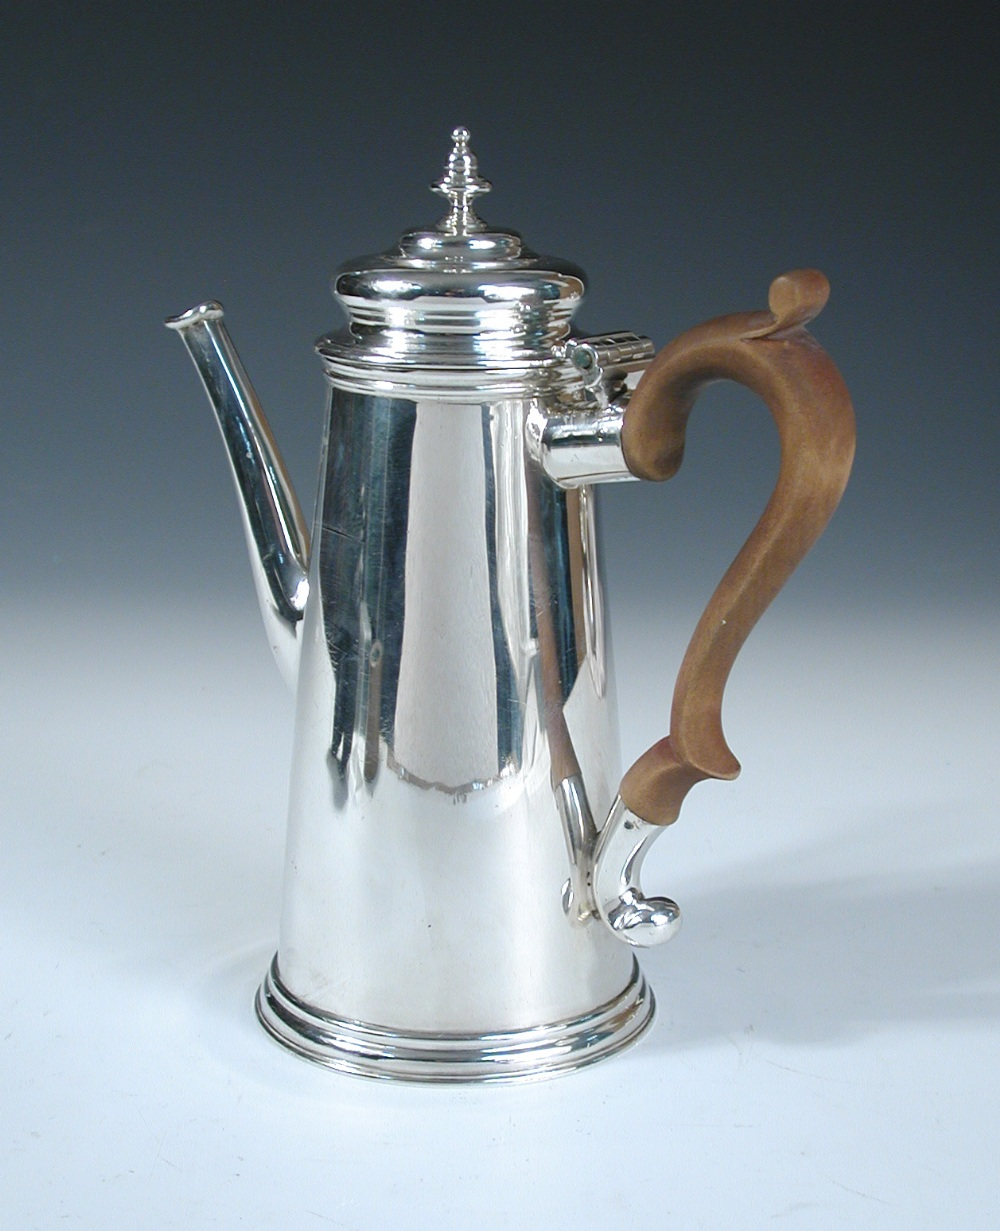 Lot 309 - An 18th century style silver coffee pot, by Charles Stuart Harris & Sons, London 1913, of plain